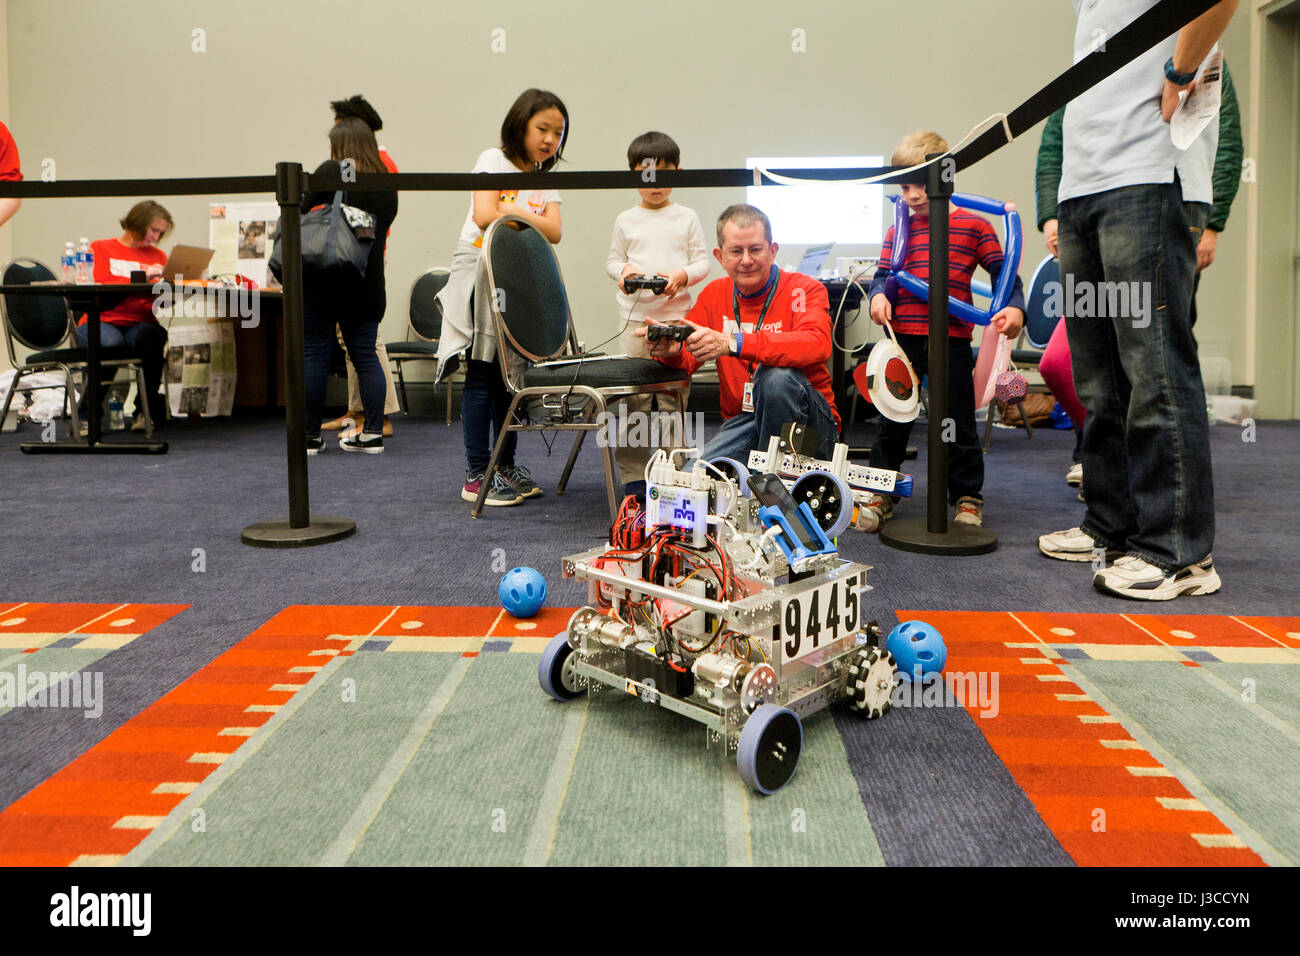 Children watching robotics demonstration during STEM festival - USA - Stock Image